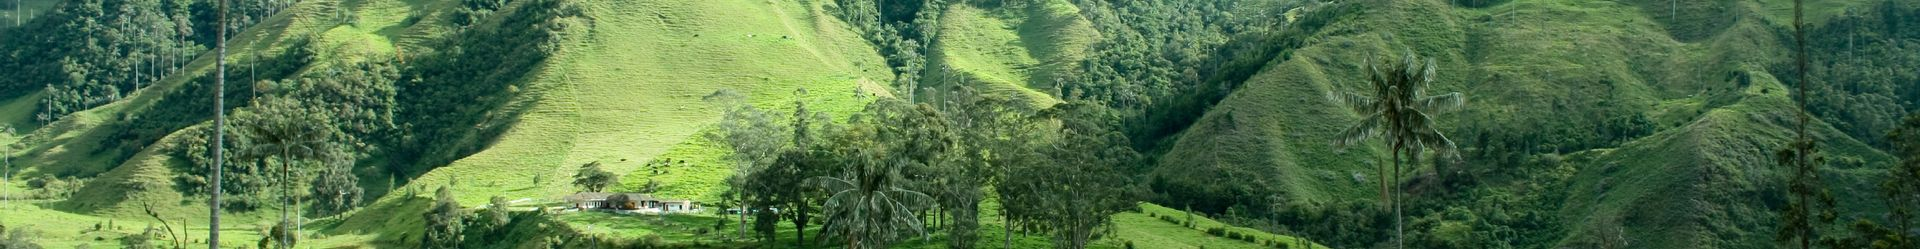 Cocora valley et the palm - Colombie©iStock.jpg